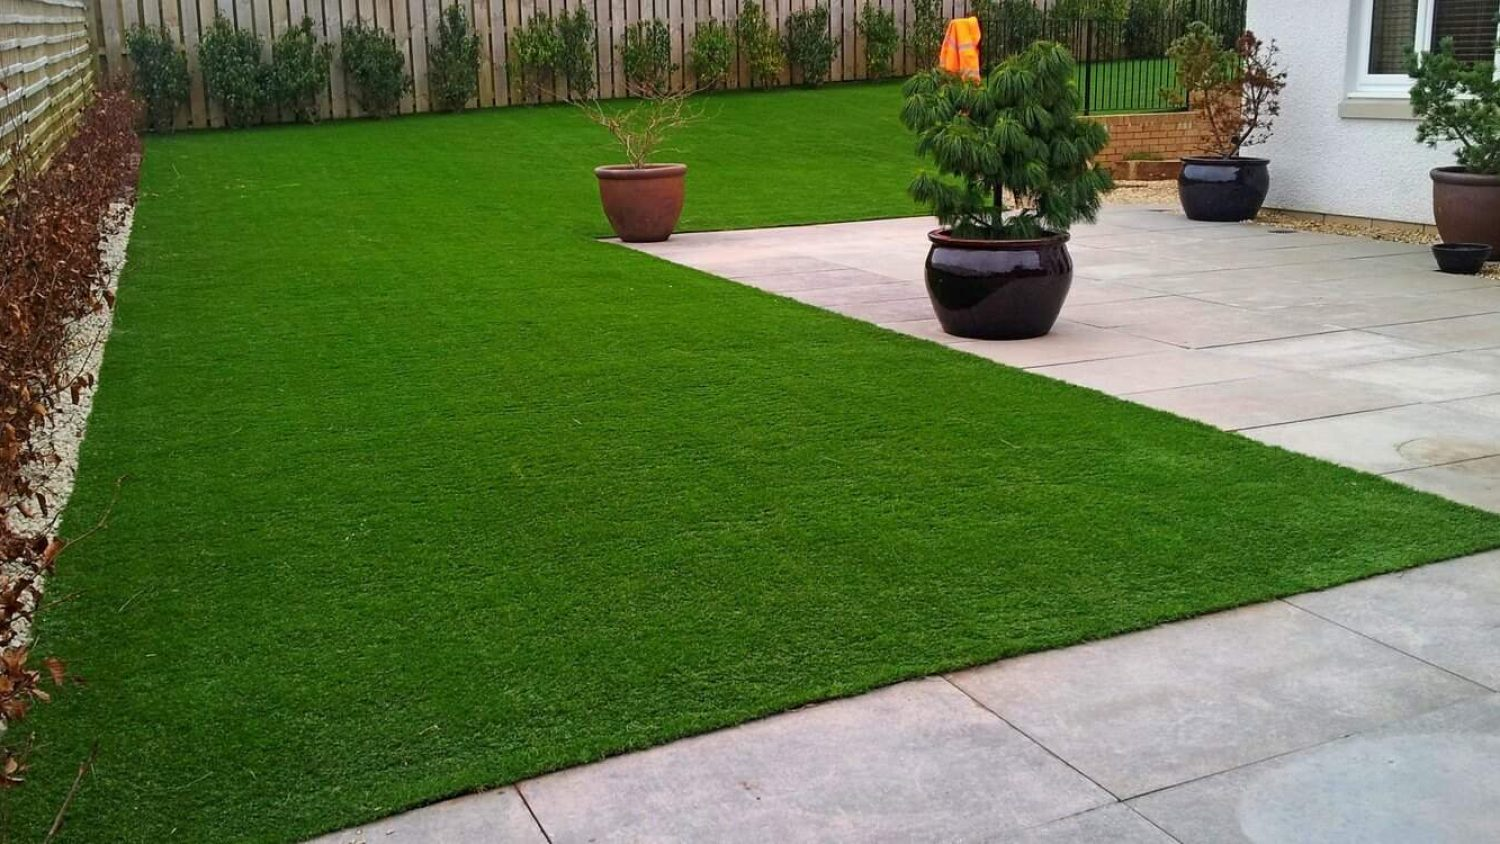 15 Benefits of Artificial Grass – Is It the Latest Gardening Wonder or Too Good to Be True?